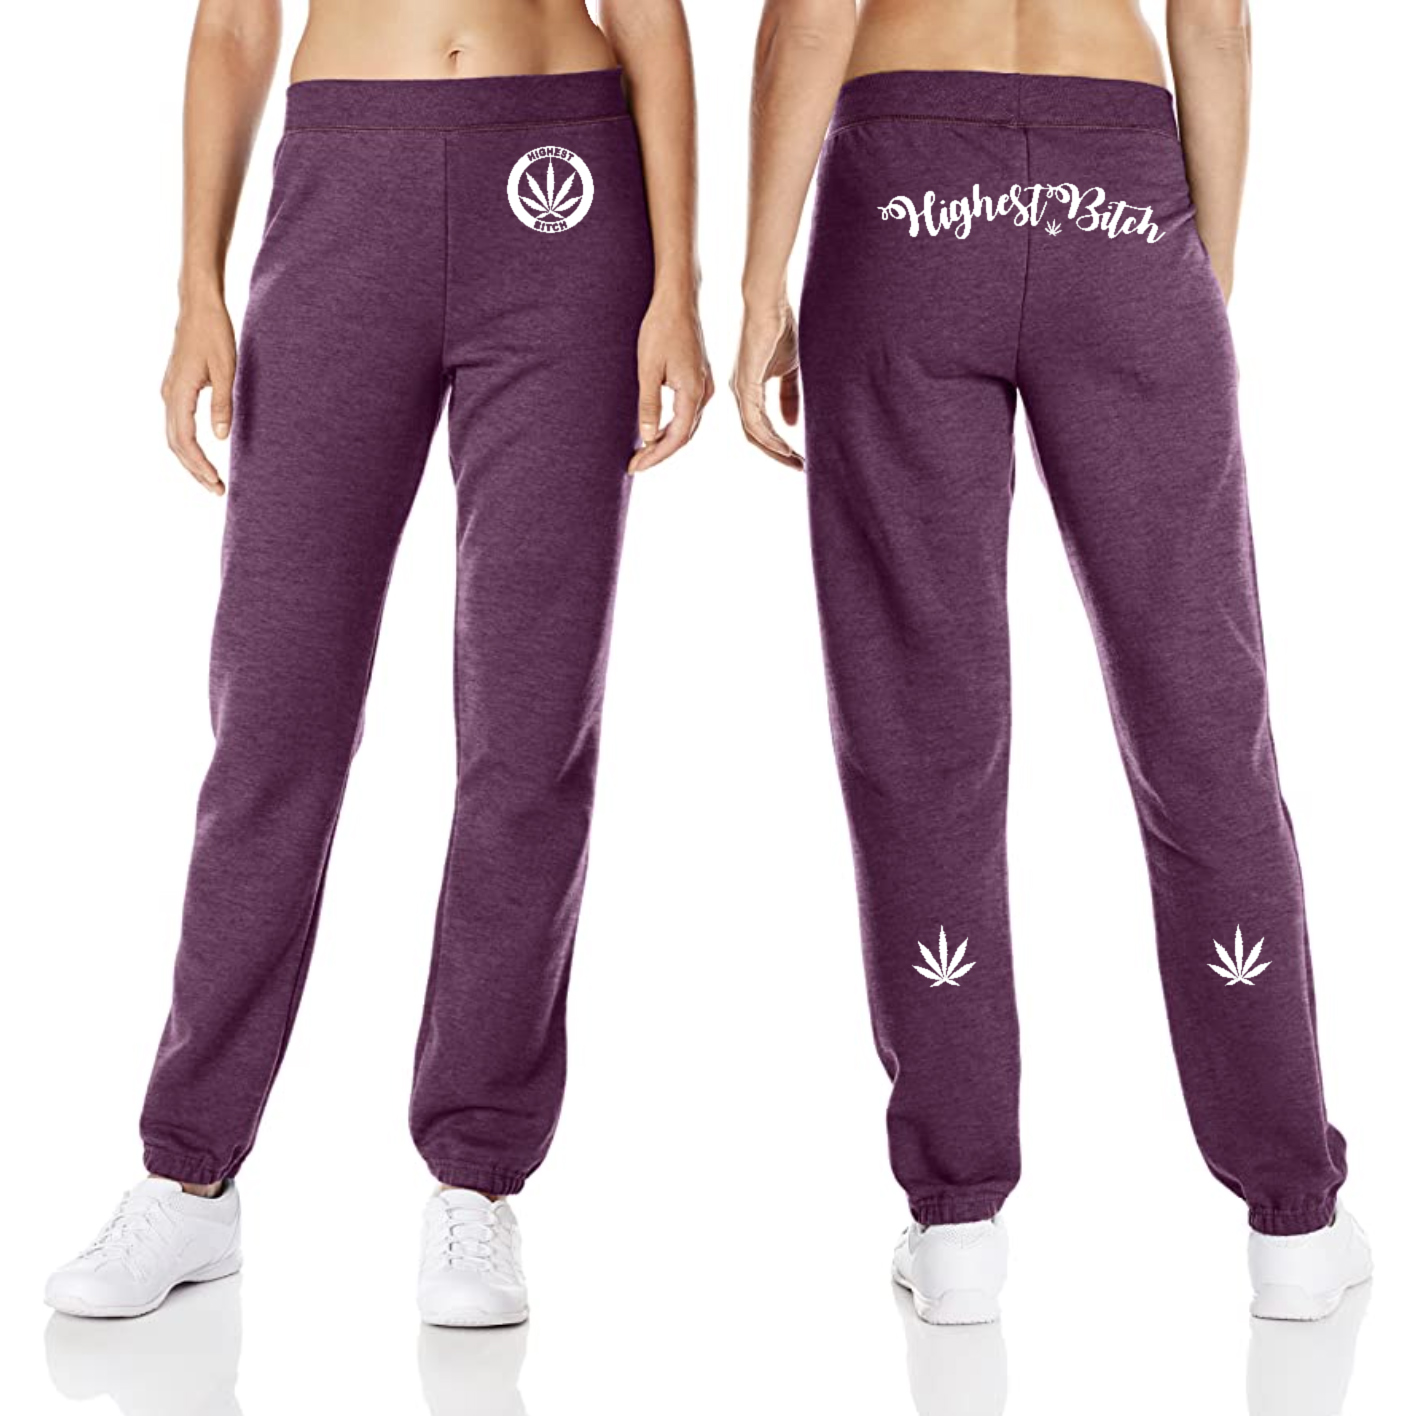 Hanes Sweatpants_highest bitch_purps